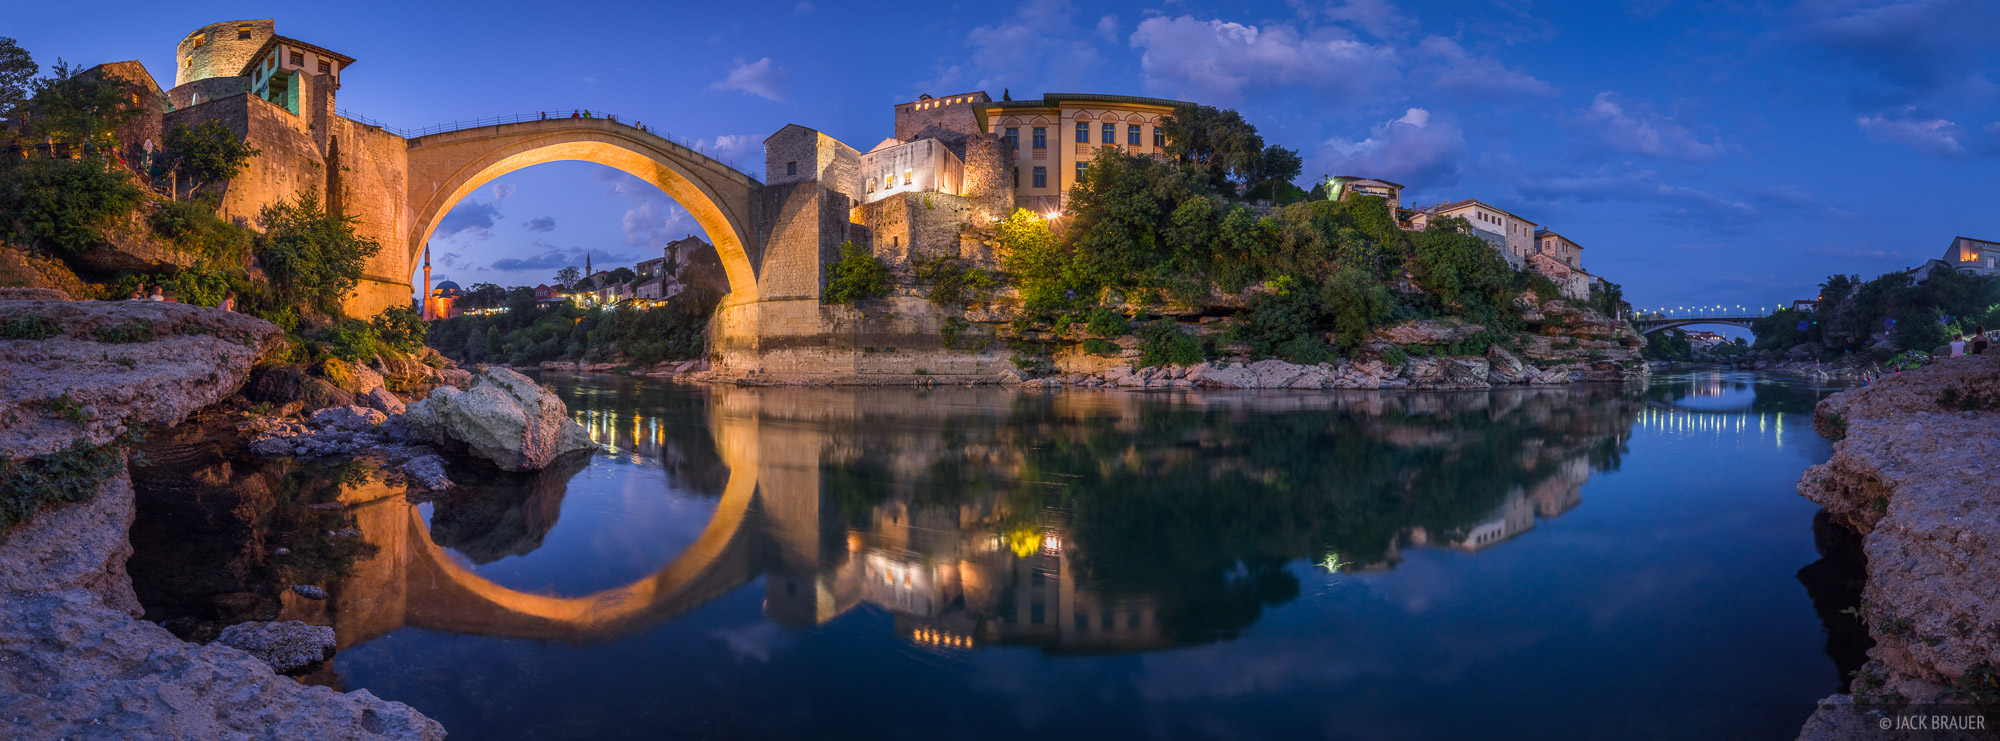 Stari Most, bridge, Mostar, Bosnia, Herzegovina, Neretva, river, reflection, photo